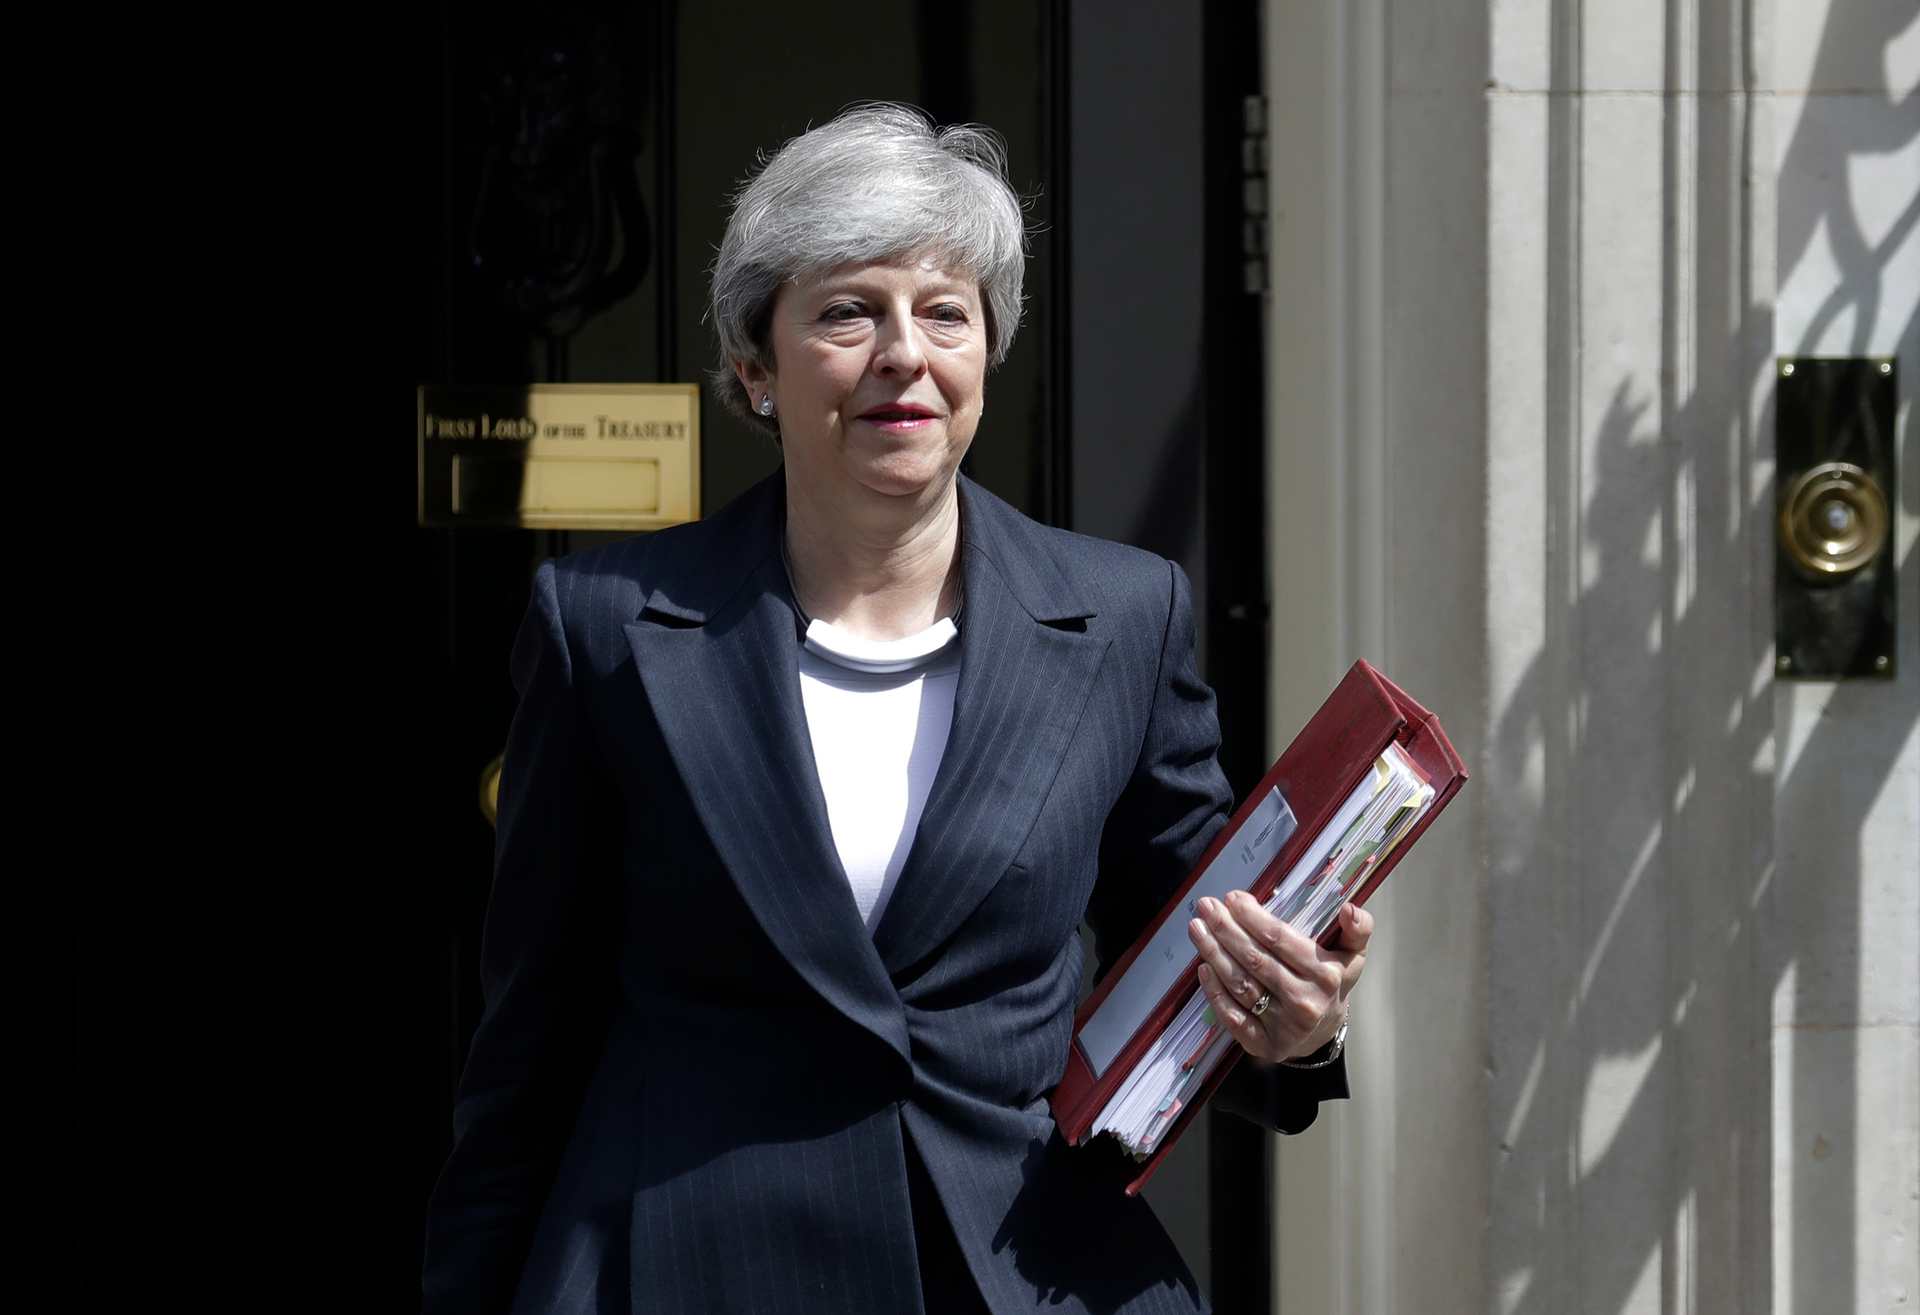 UK Prime Minister Theresa May resigns after Brexit failure